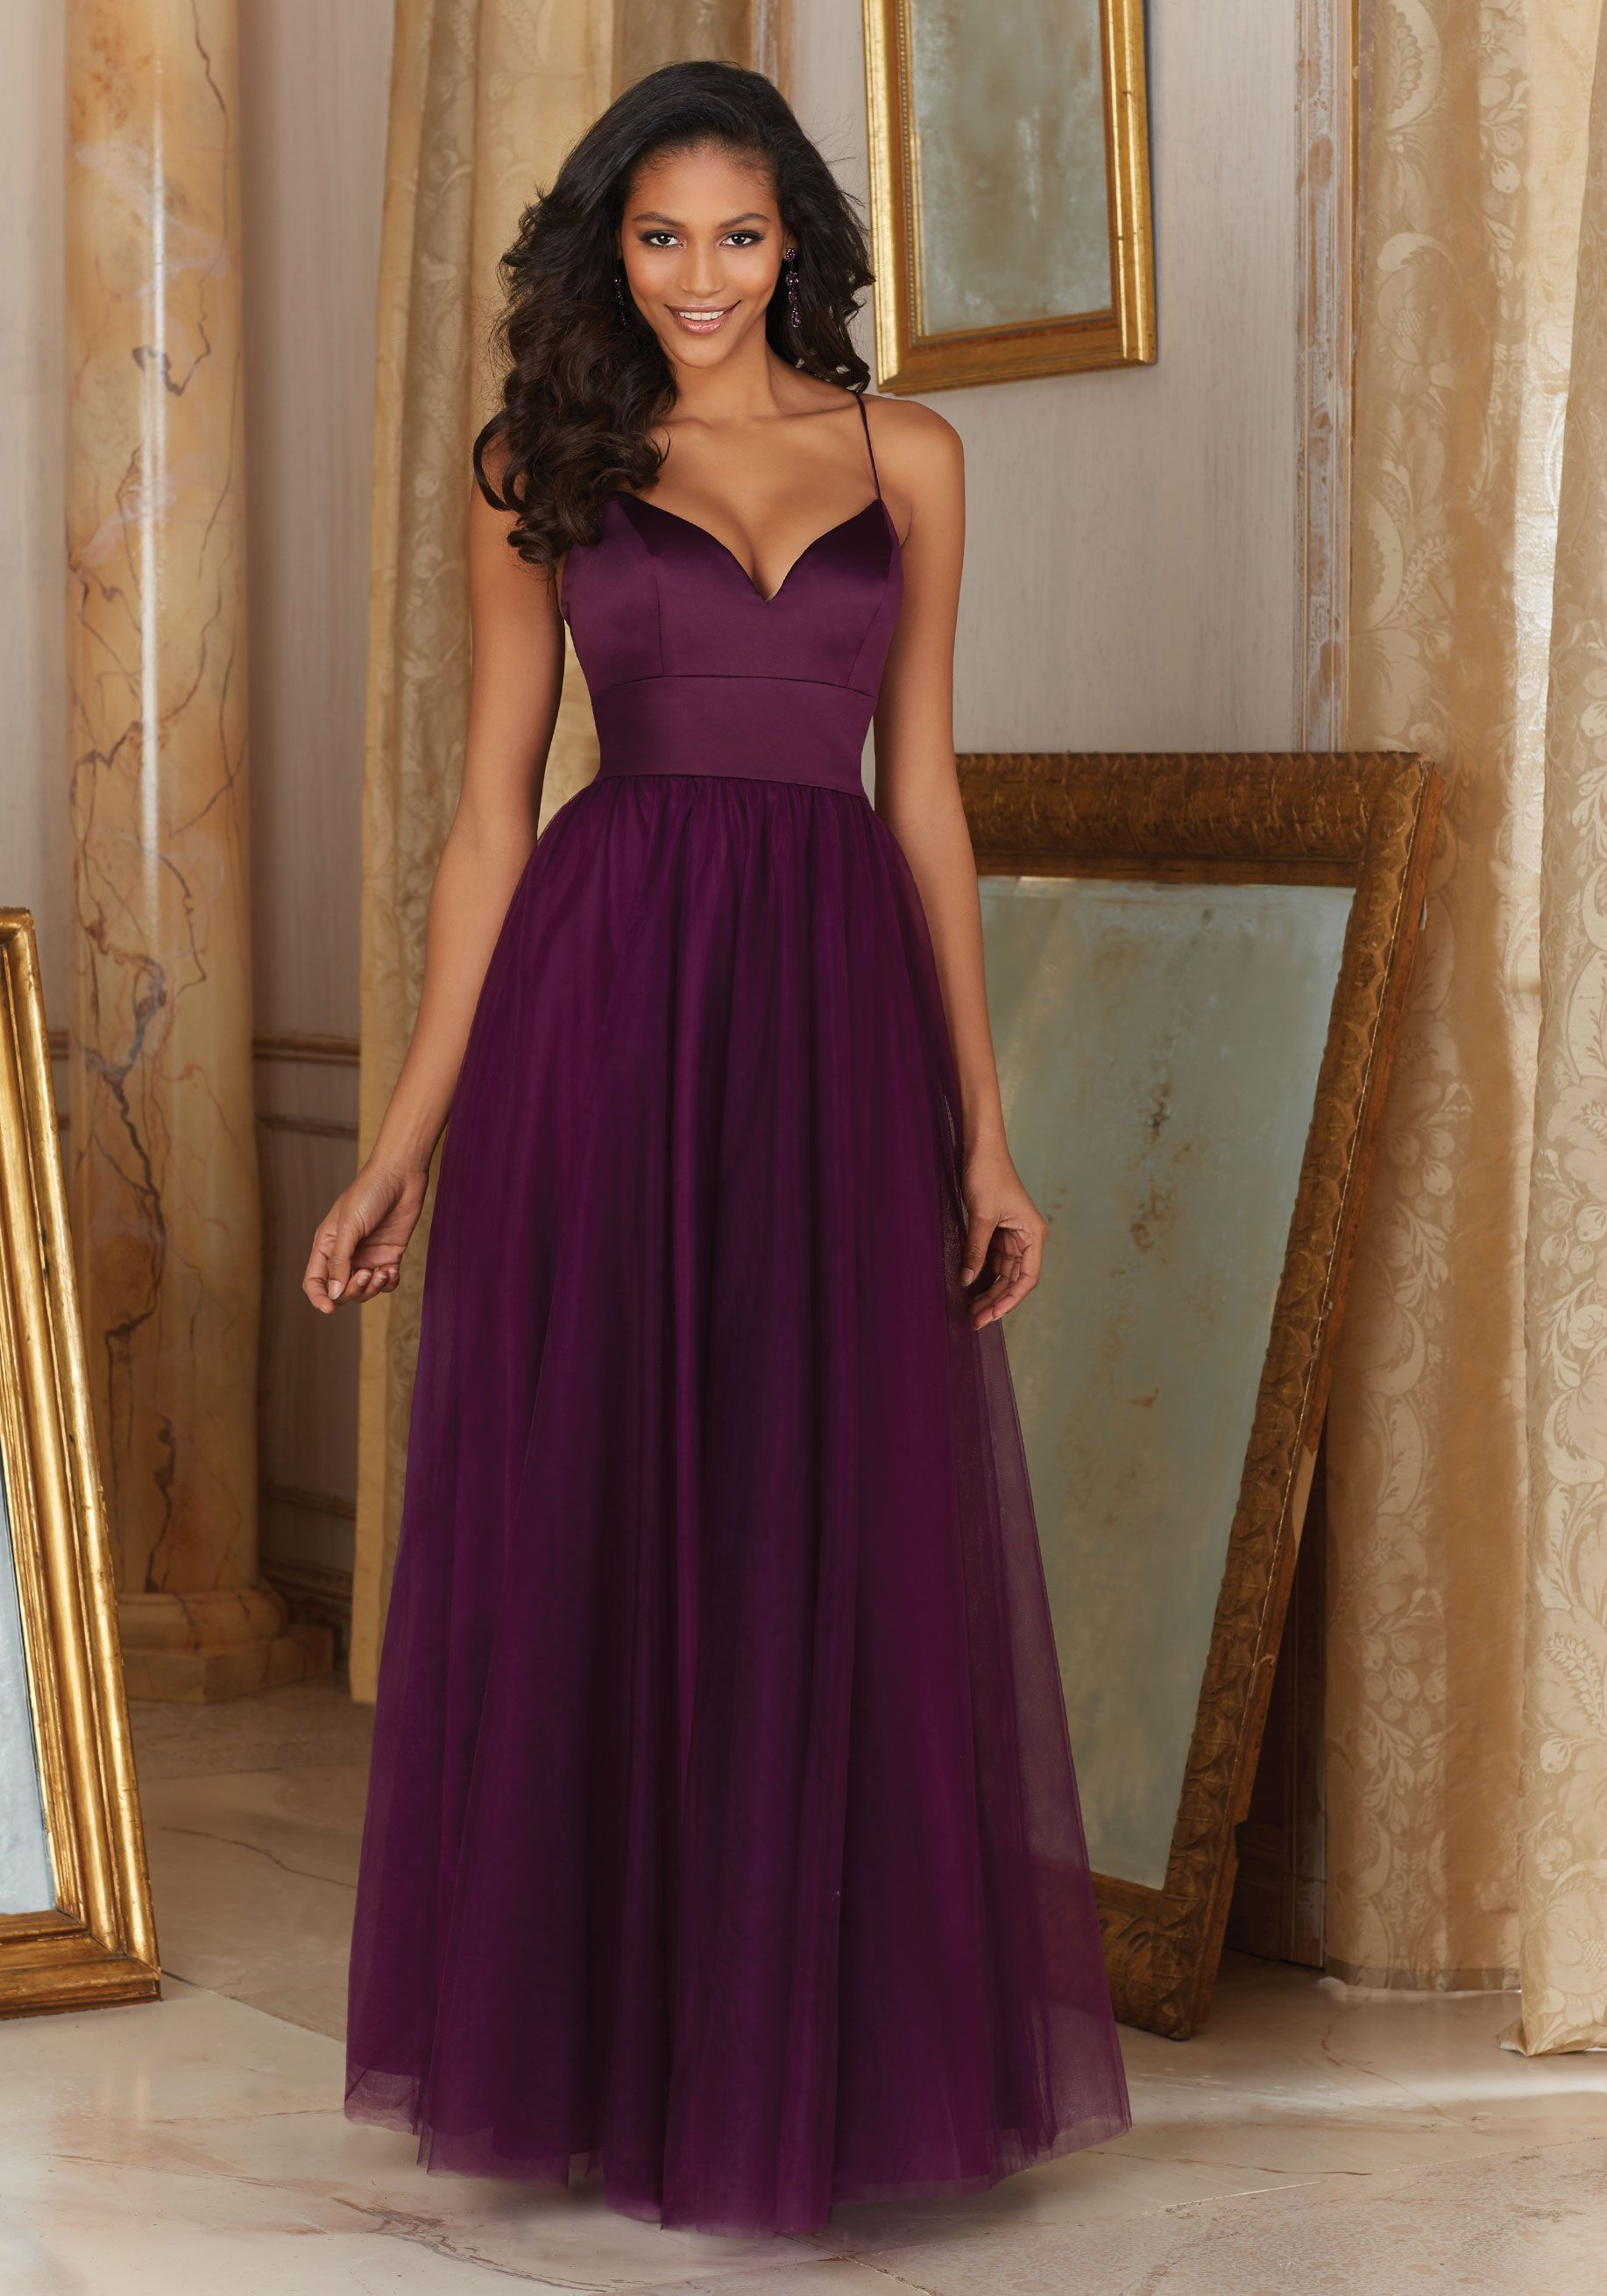 Satin and tulle bridesmaid dress designed by madeline gardner